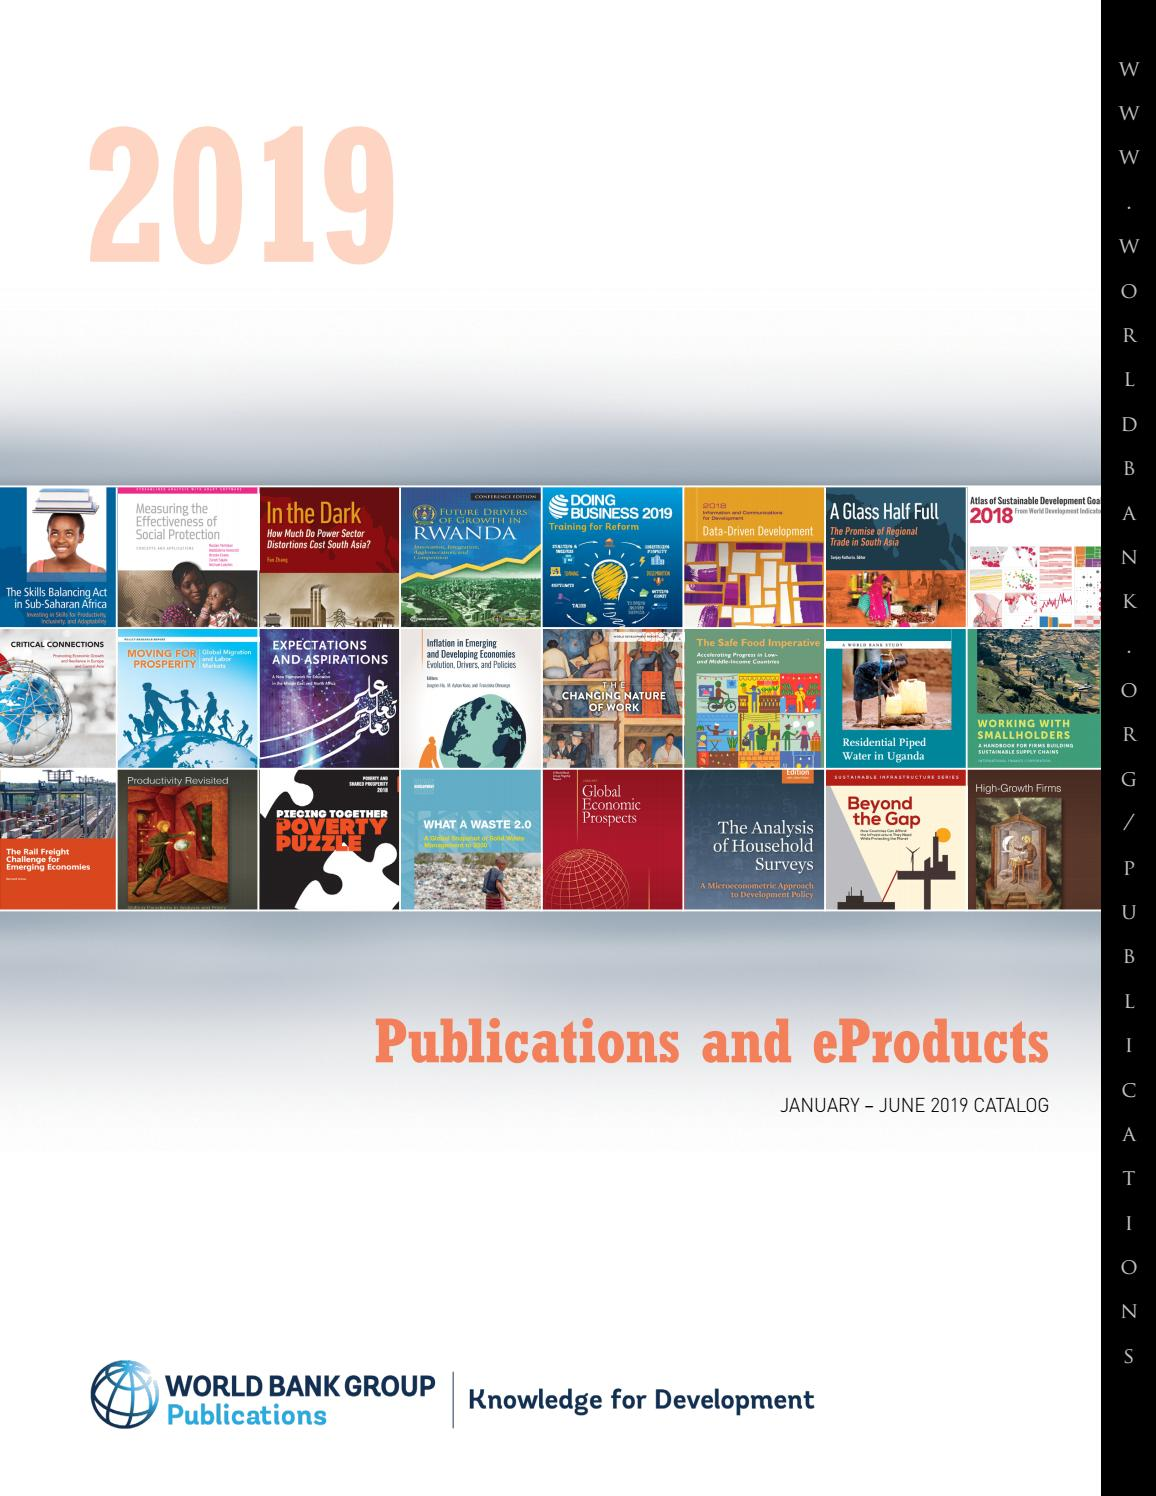 Spring 2019 Catalog by World Bank Group Publications issuu